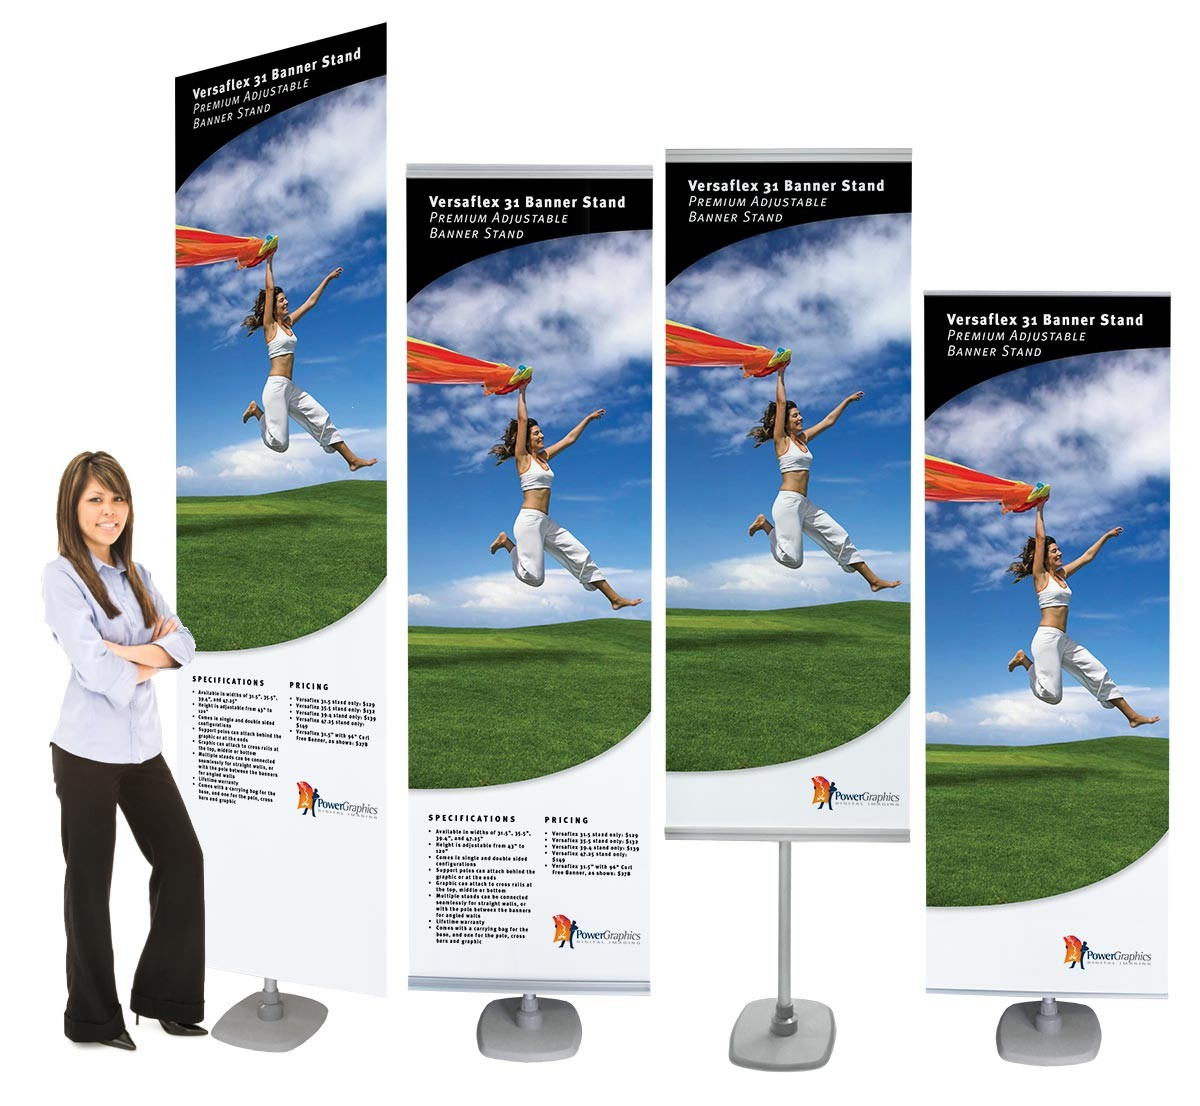 Versaflex 31 Double Portable Banner Stand